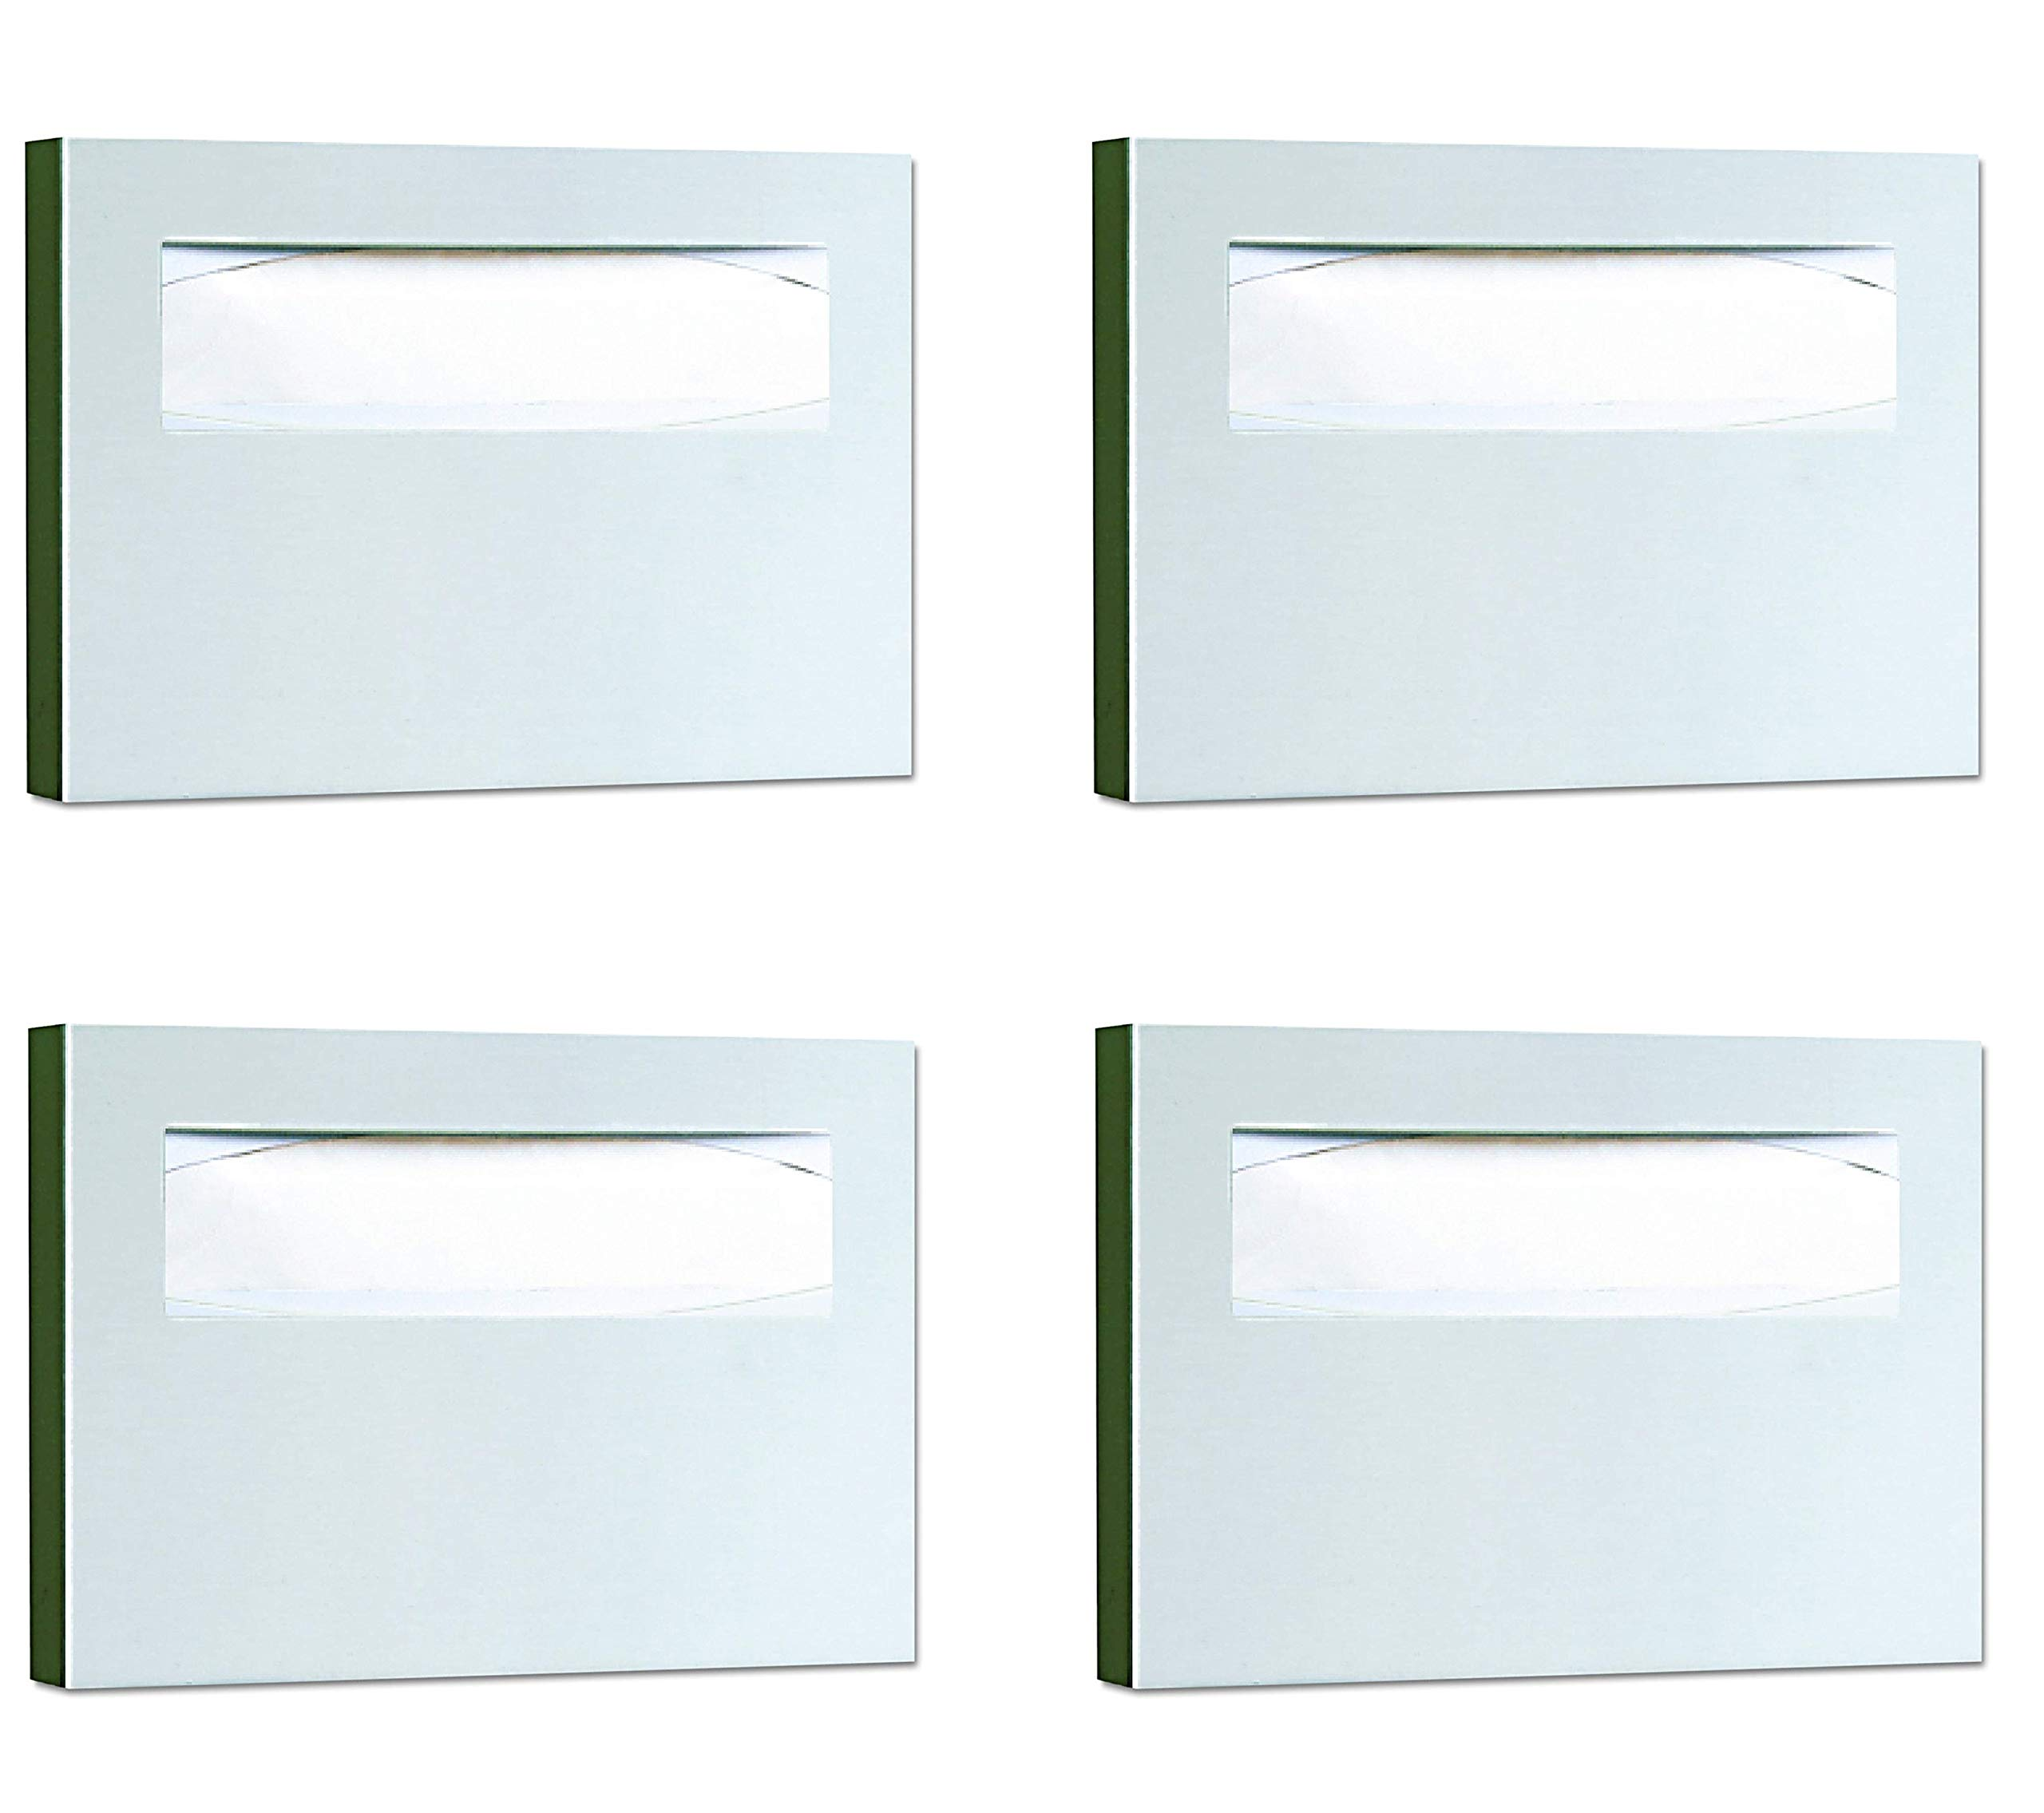 Bobrick 221 Stainless Steel Toilet Seat Cover Dispenser, 15 3/4 x 2 x 11, Satin Finish (Pack of 4) by Bobrick (Image #1)